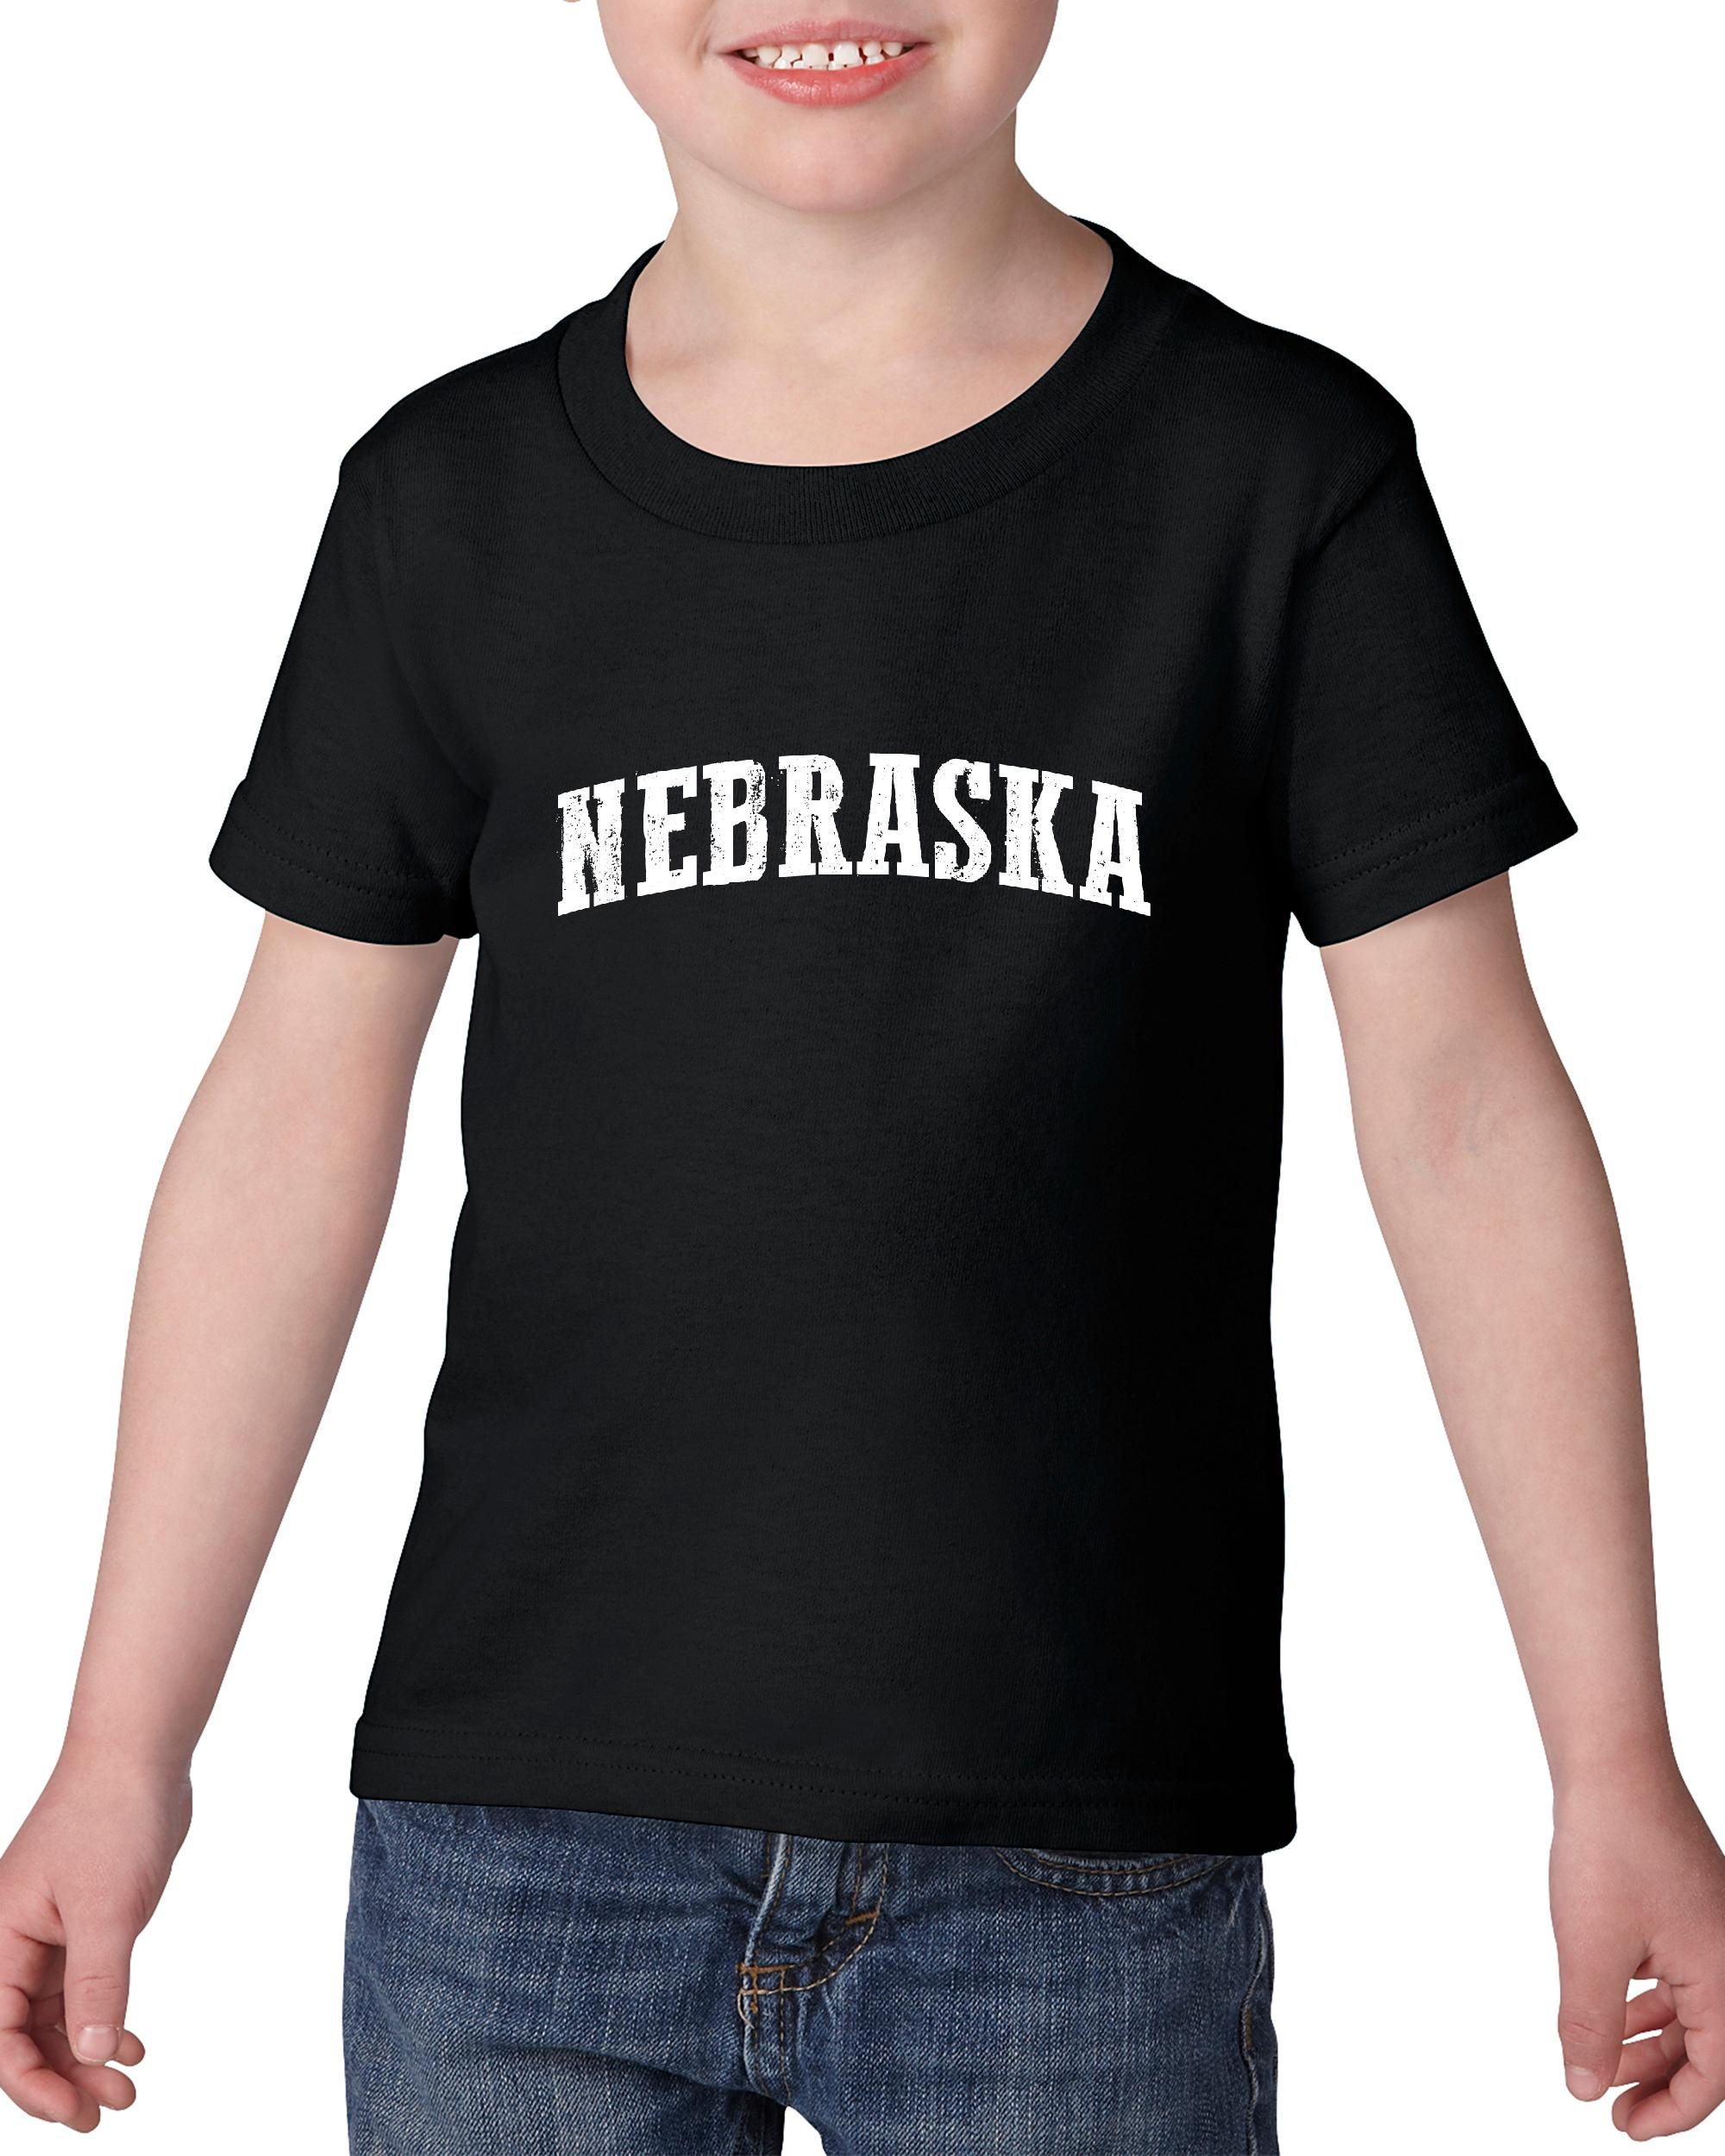 Artix NE Nebraska Flag Omaha Map Cornhuskers Home of University of Nebraska  Heavy Cotton Toddler Kids T-Shirt Tee Clothing